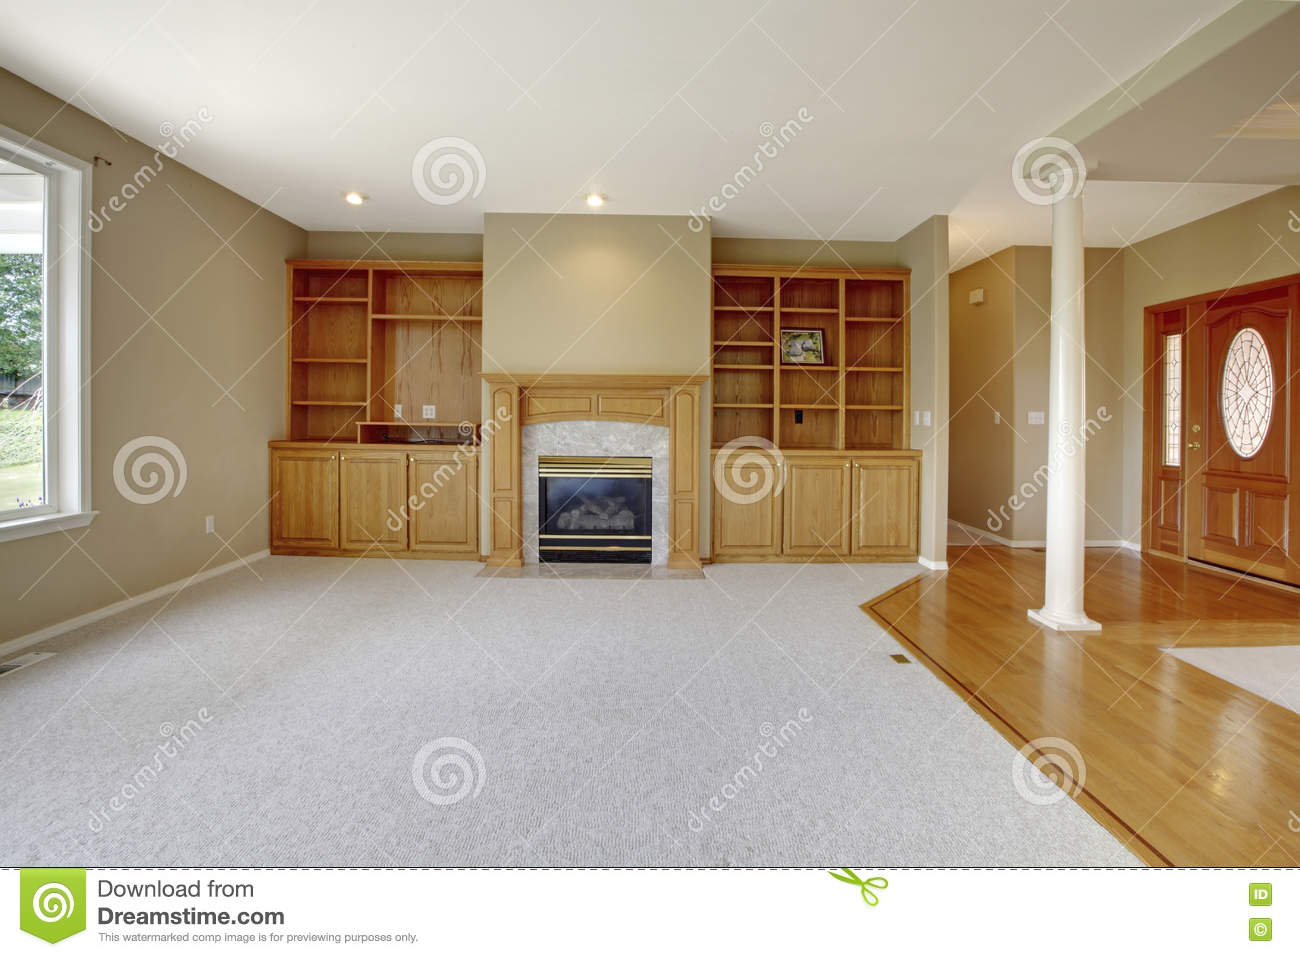 Living Room In Open Floor Plan With Foyer View And Wooden Entrance Door Stock Photo Image